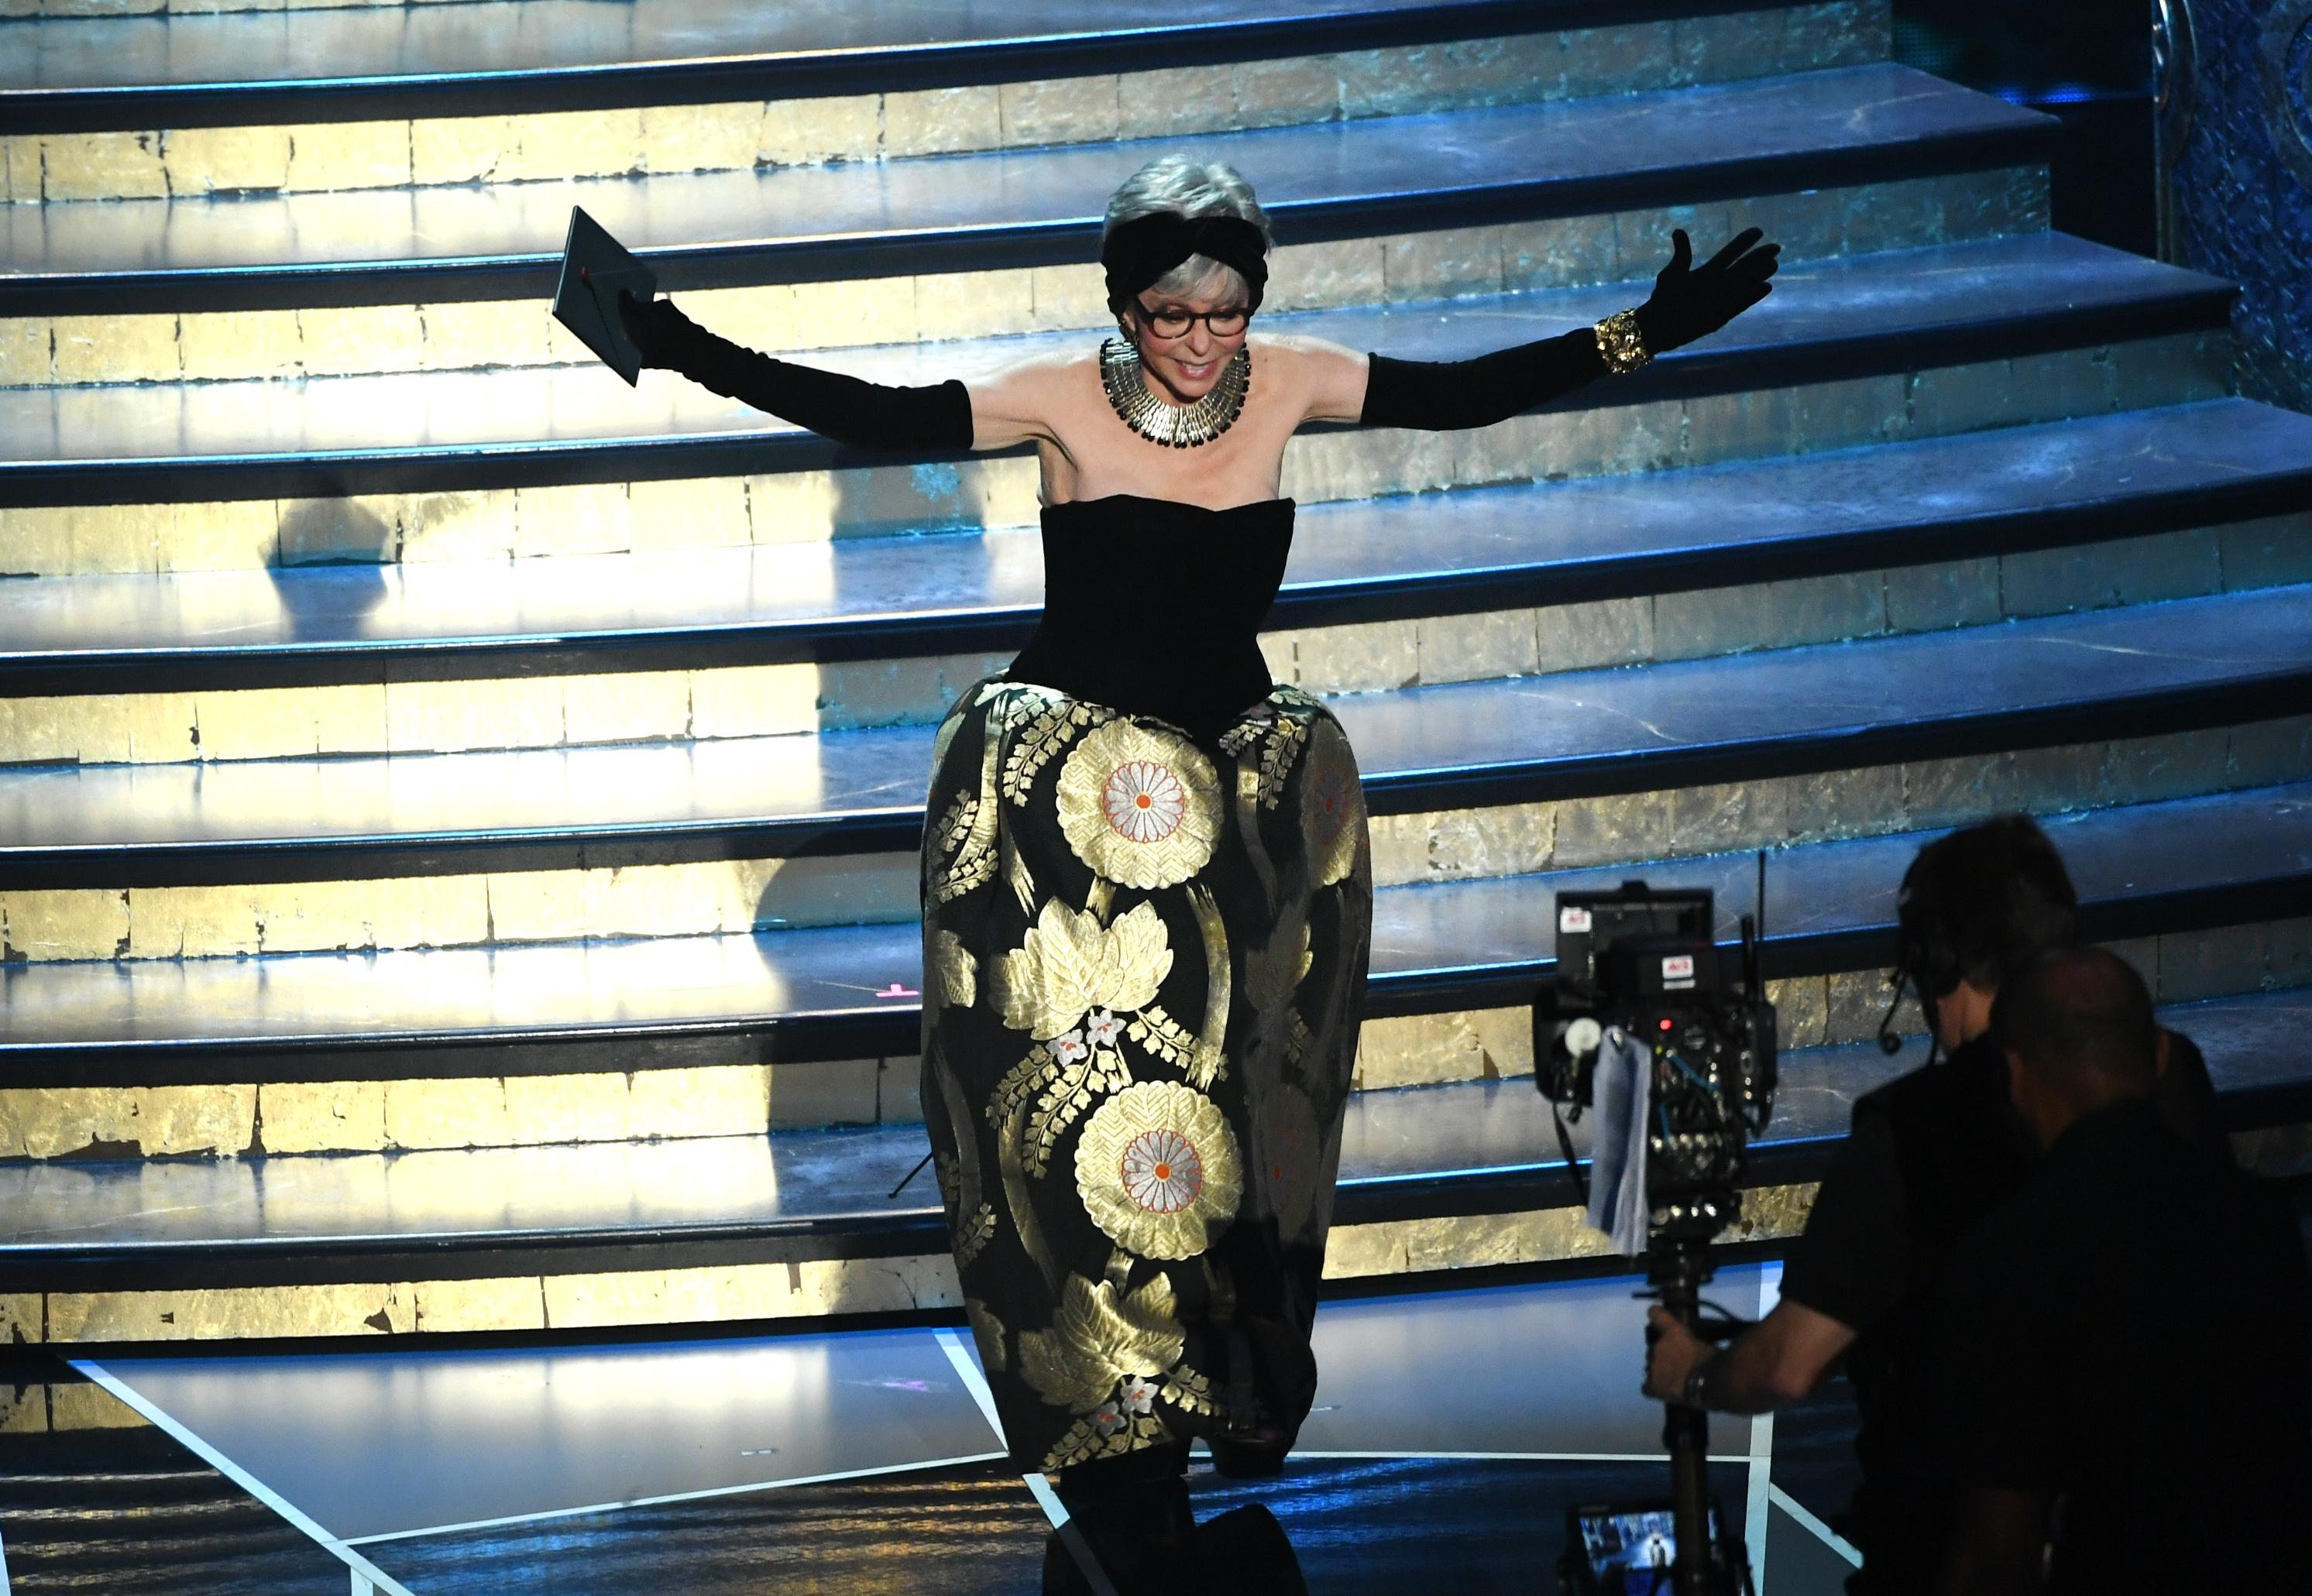 HOLLYWOOD, CA - MARCH 04:  Actor Rita Moreno walks onstage during the 90th Annual Academy Awards at the Dolby Theatre at Hollywood & Highland Center on March 4, 2018 in Hollywood, California.  (Photo by Kevin Winter/Getty Images)